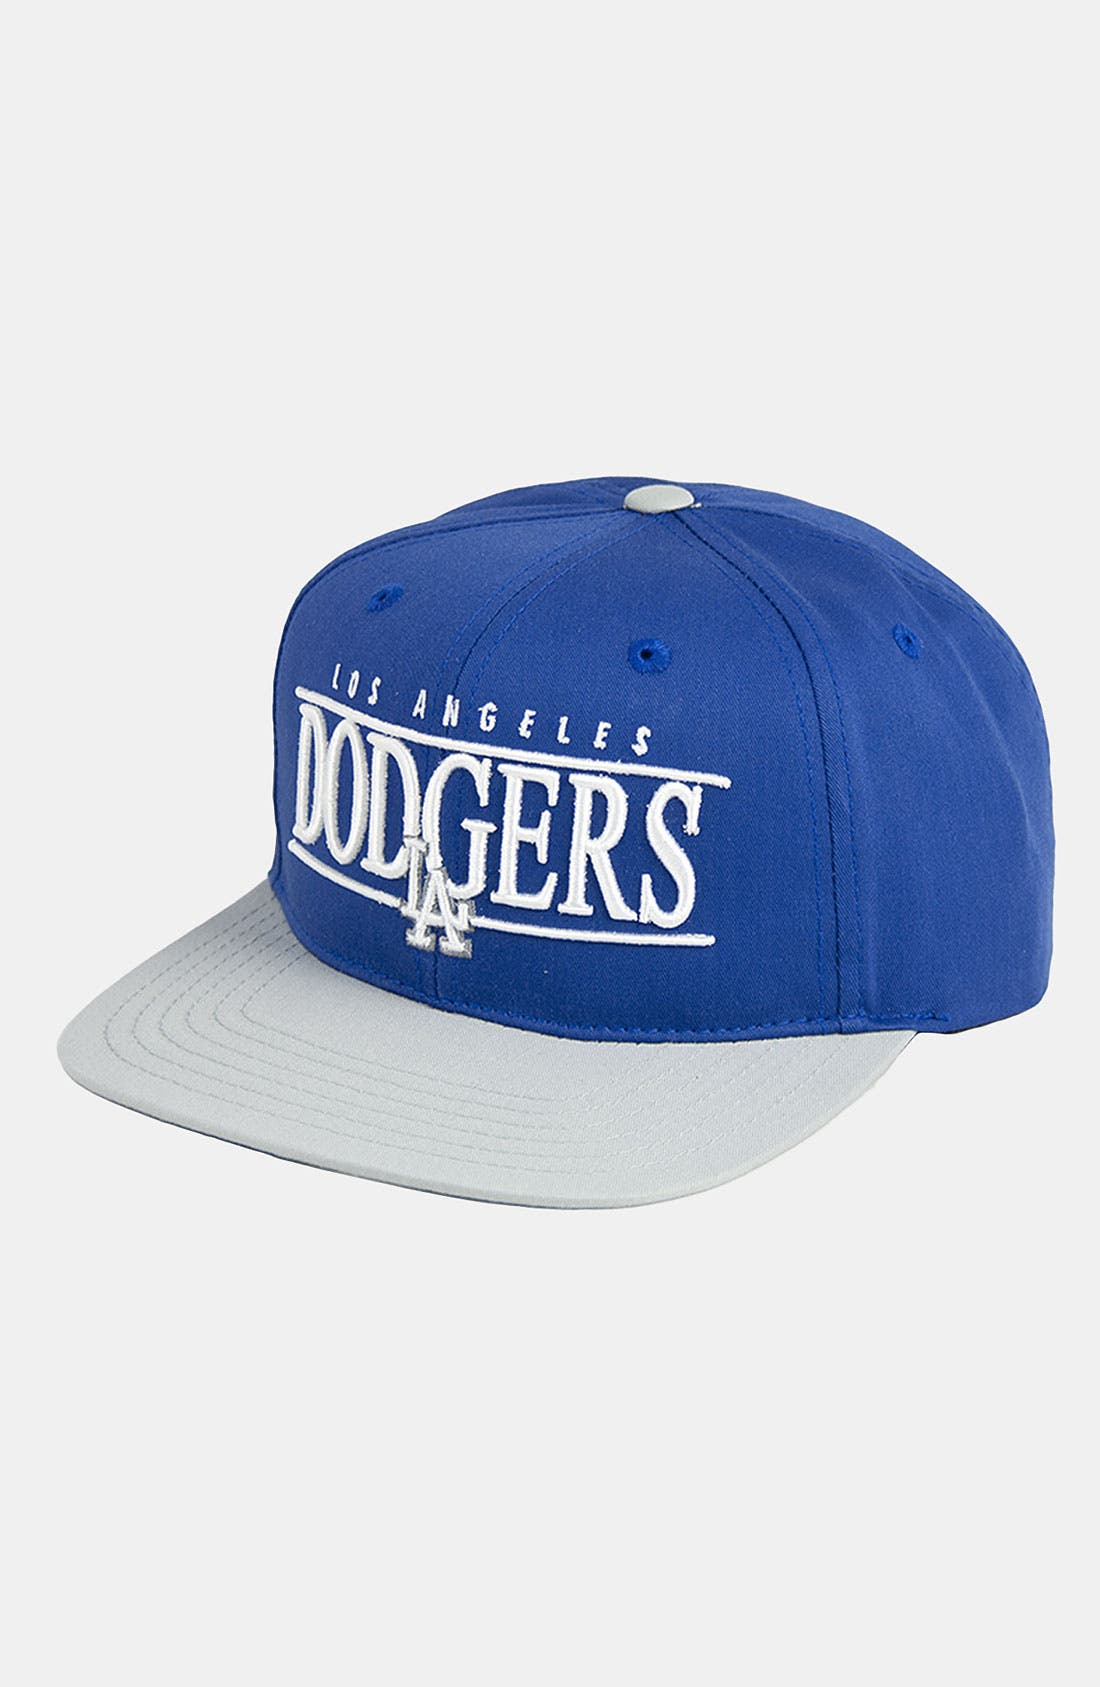 Main Image - American Needle 'Los Angeles Dodgers - Nineties' Twill Snapback Baseball Cap